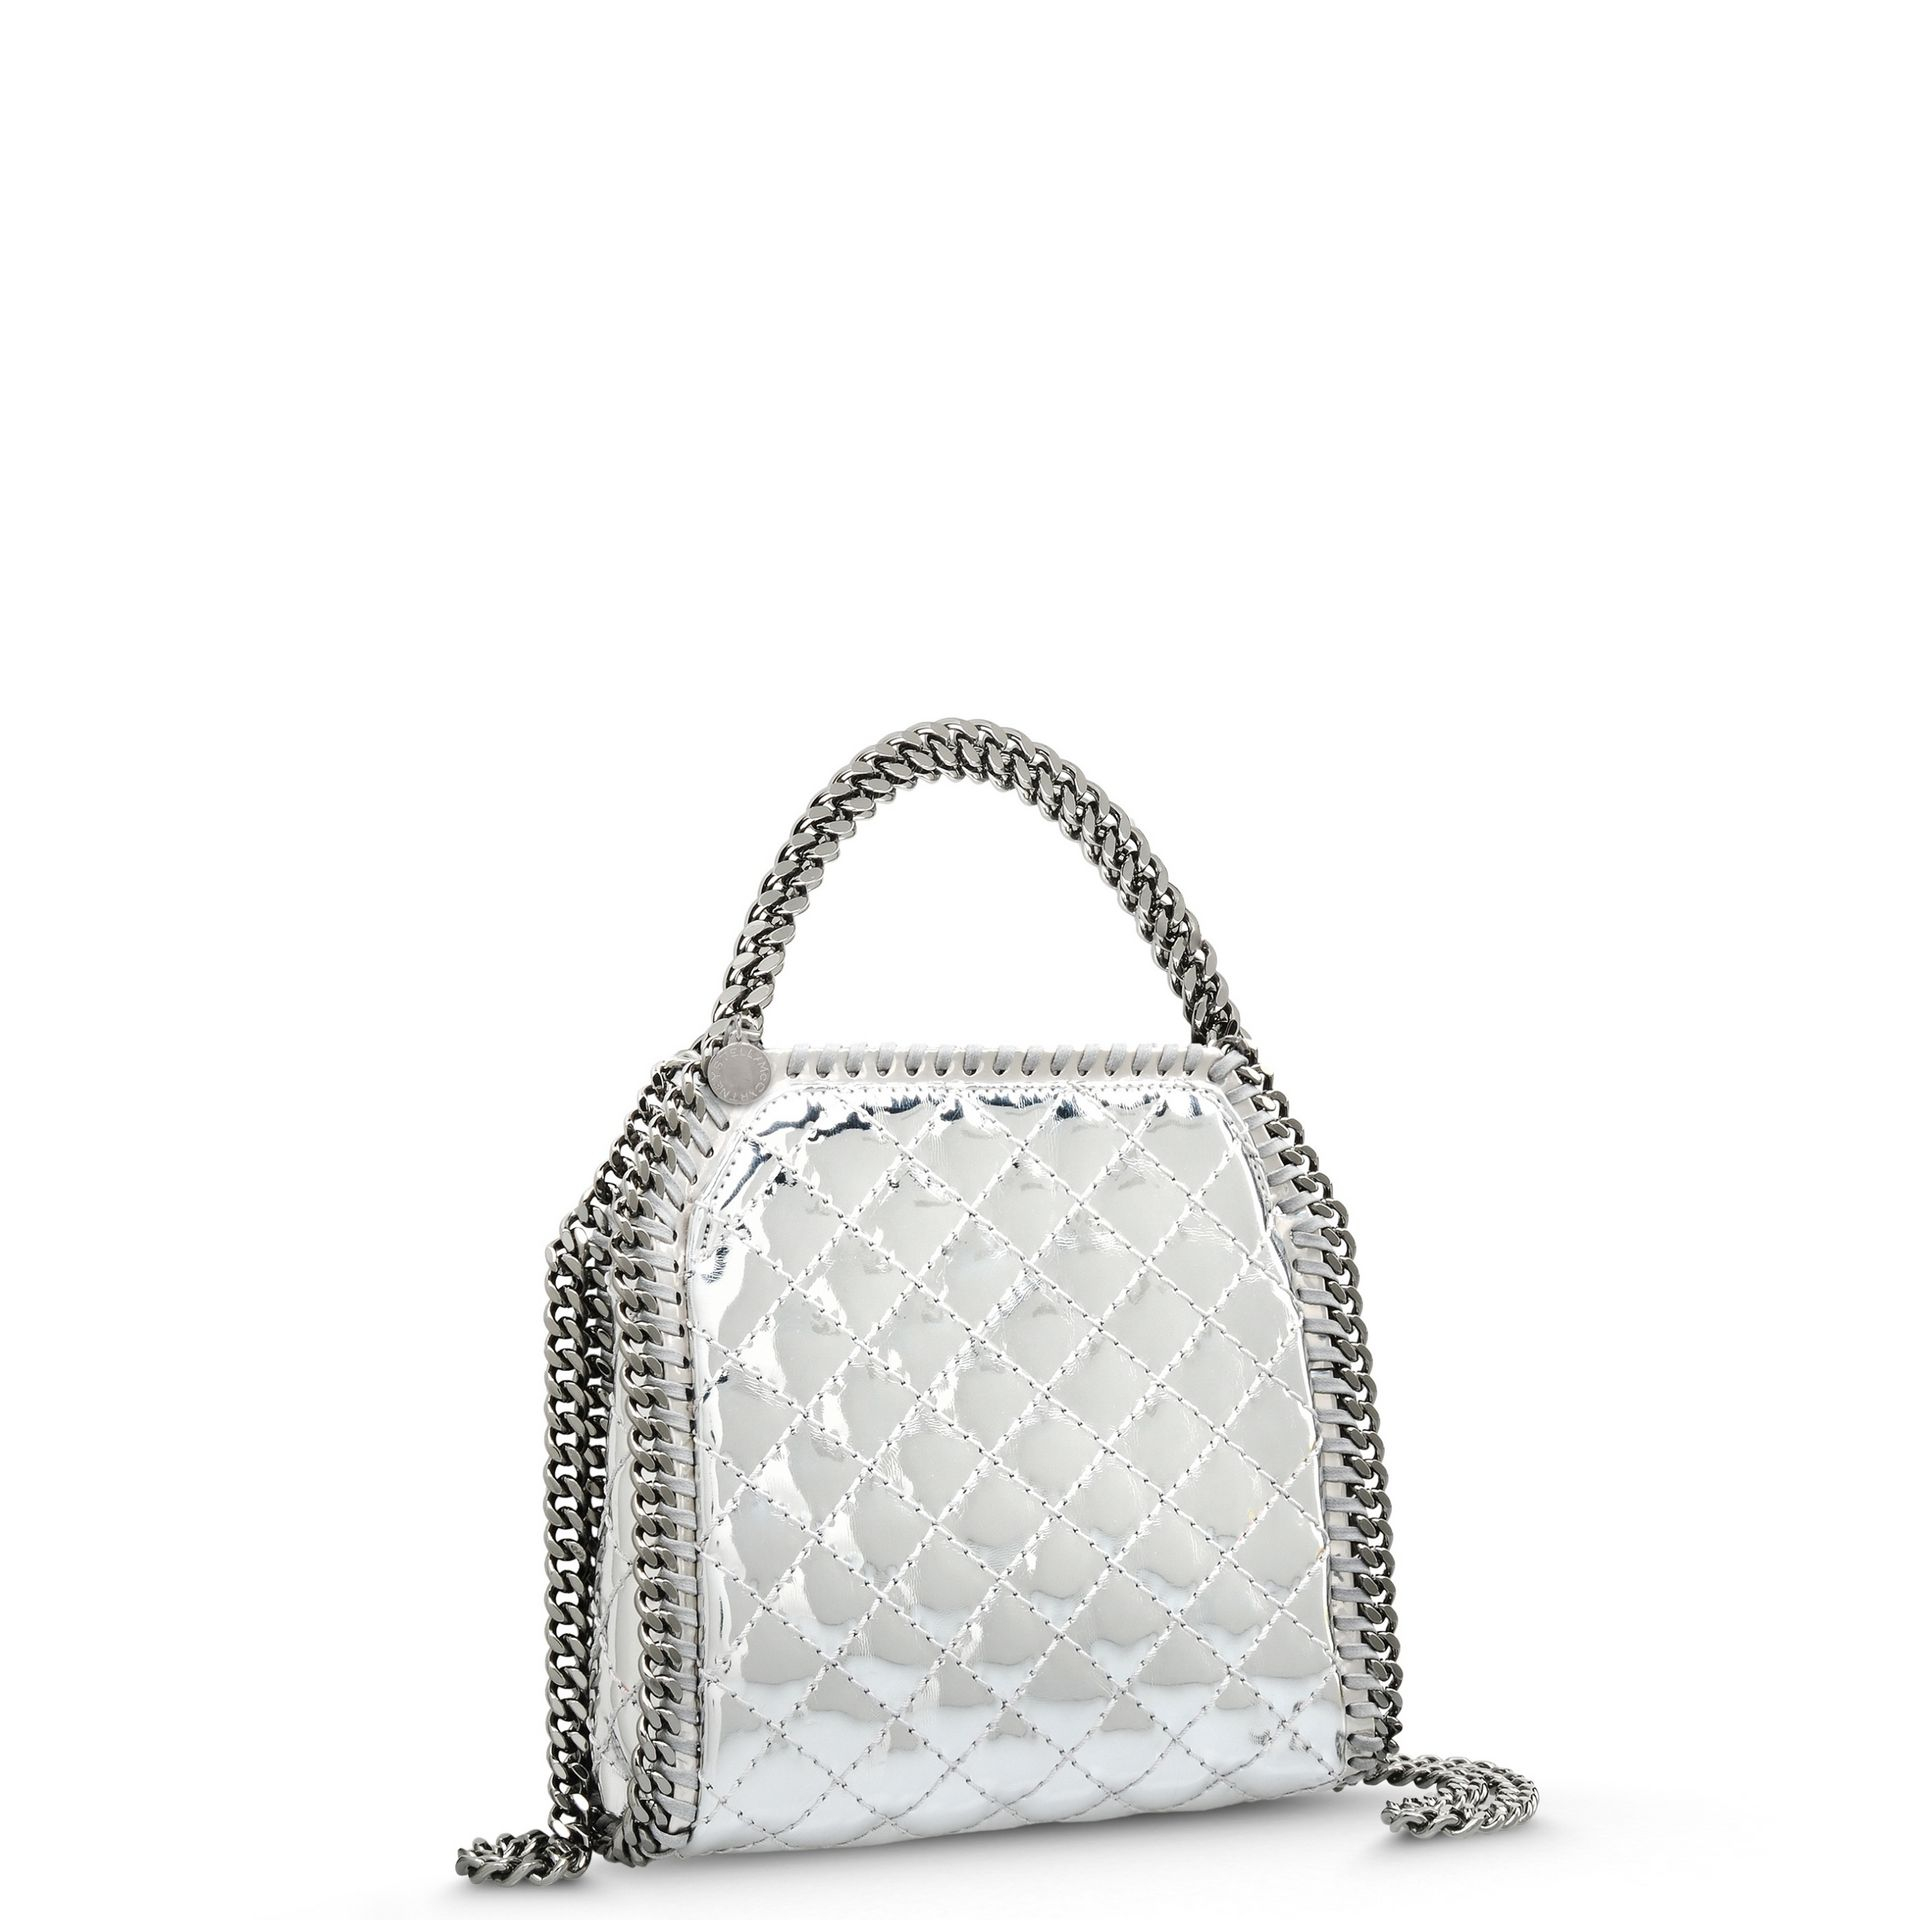 Stella McCartney Falabella Quilted Metallic Mini Tote Bag in ... 8e5e5f8bb8fe9